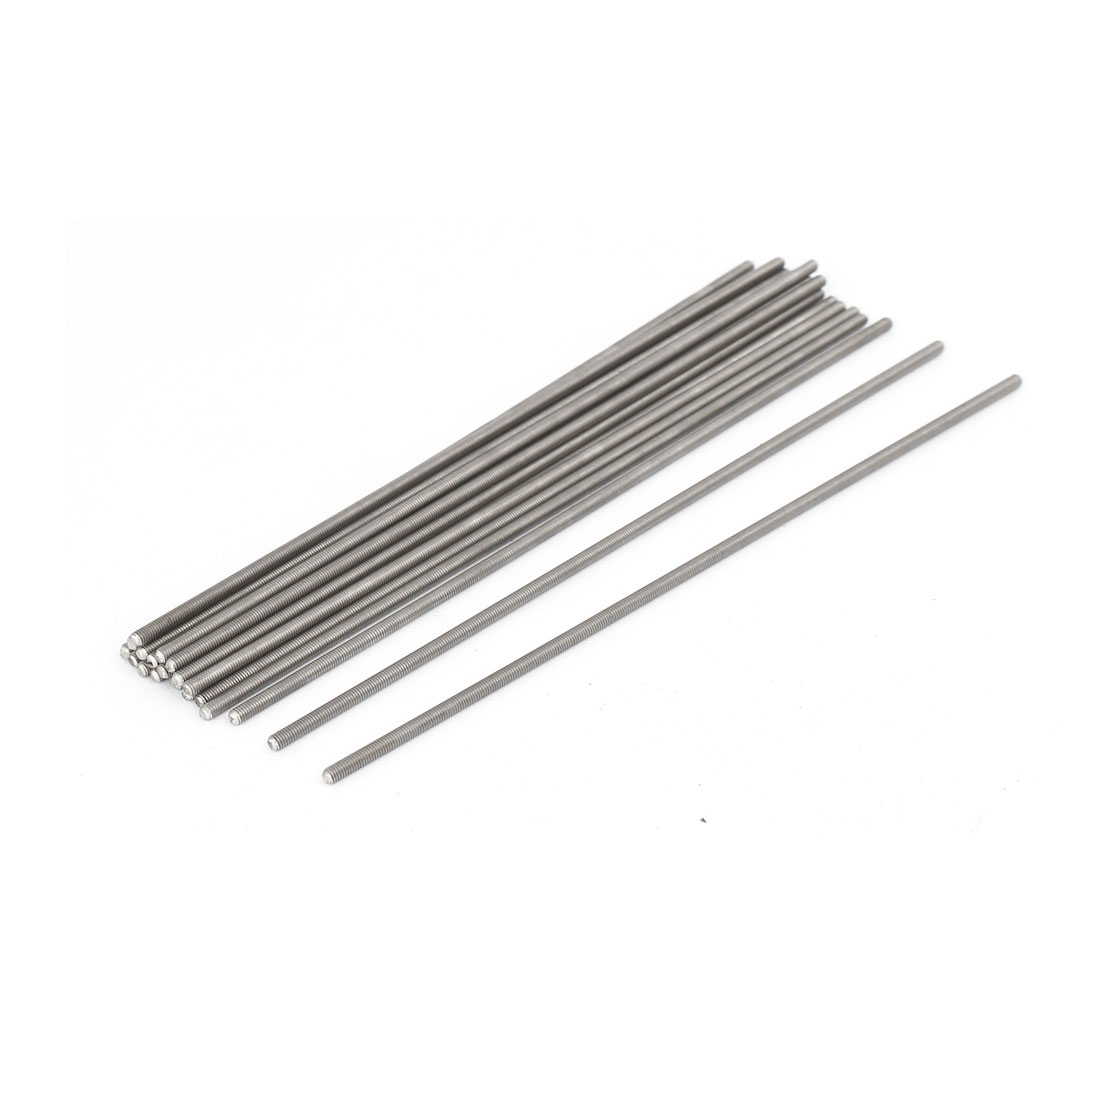 M3 x 170mm 0.5mm Pitch 304 Stainless Steel Fully Threaded Rods Bar Studs 20 Pcs